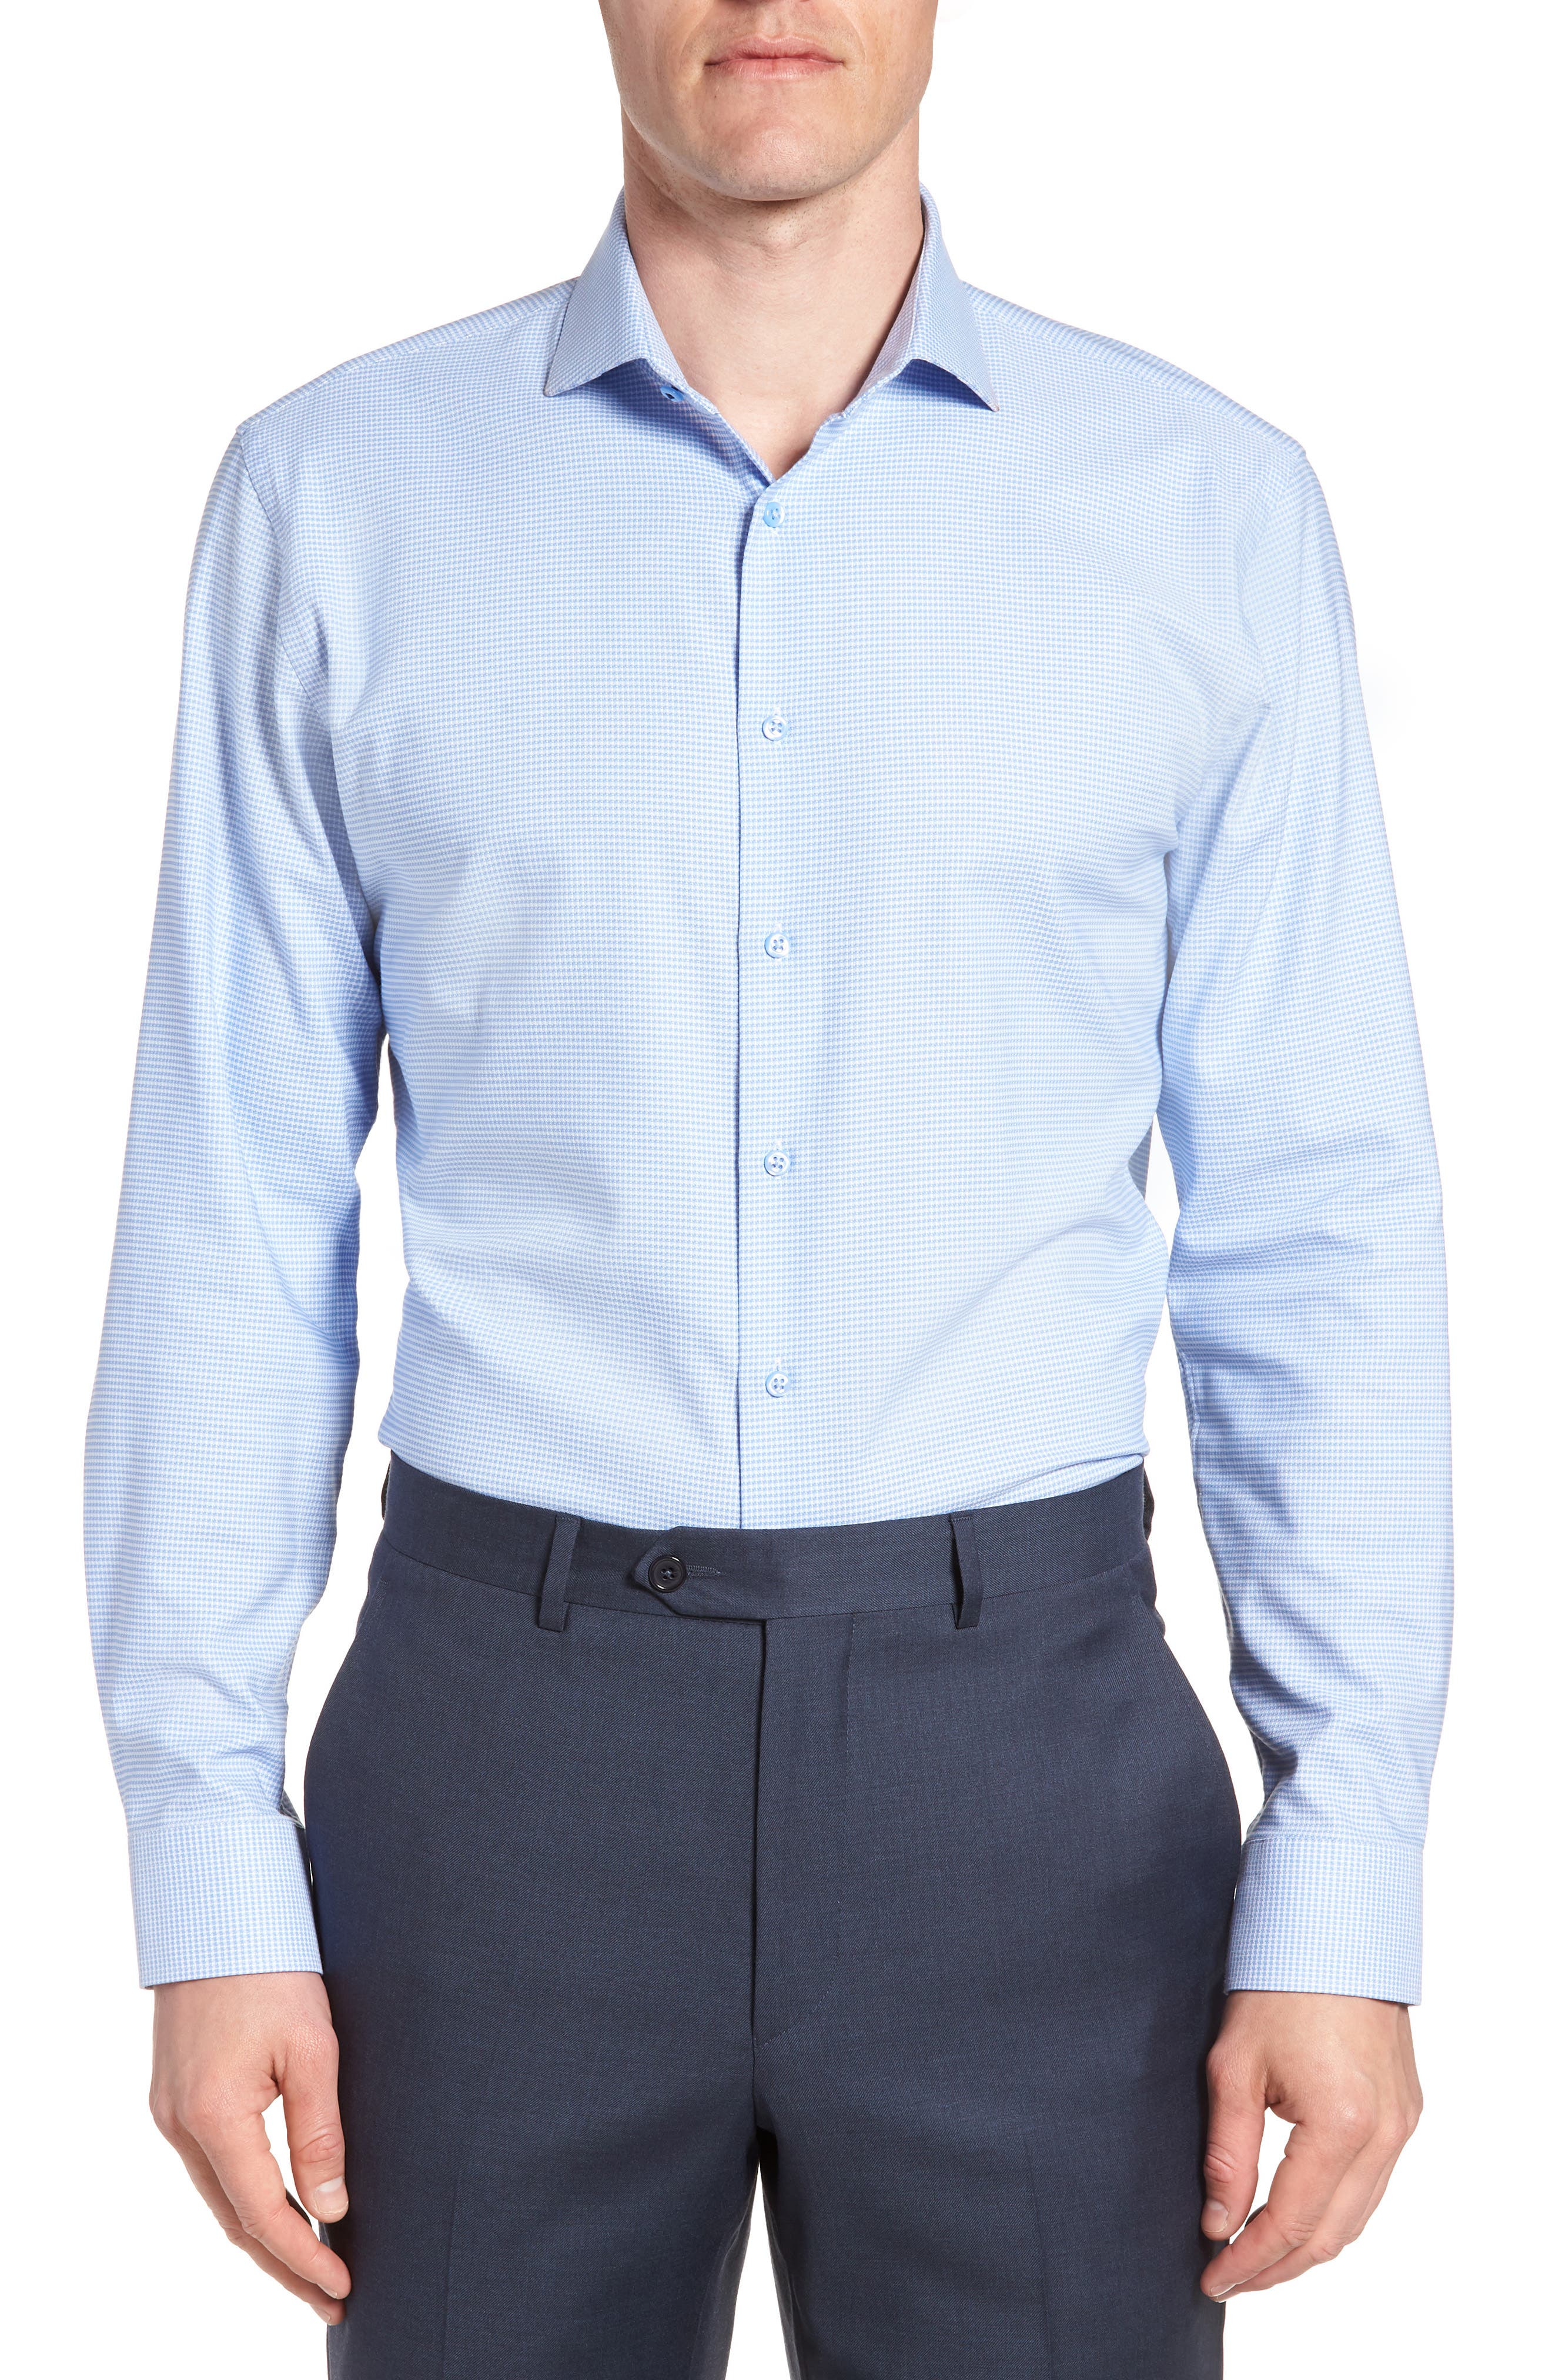 Tech-Smart Trim Fit Stretch Texture Dress Shirt,                             Main thumbnail 1, color,                             Blue Hydrangea